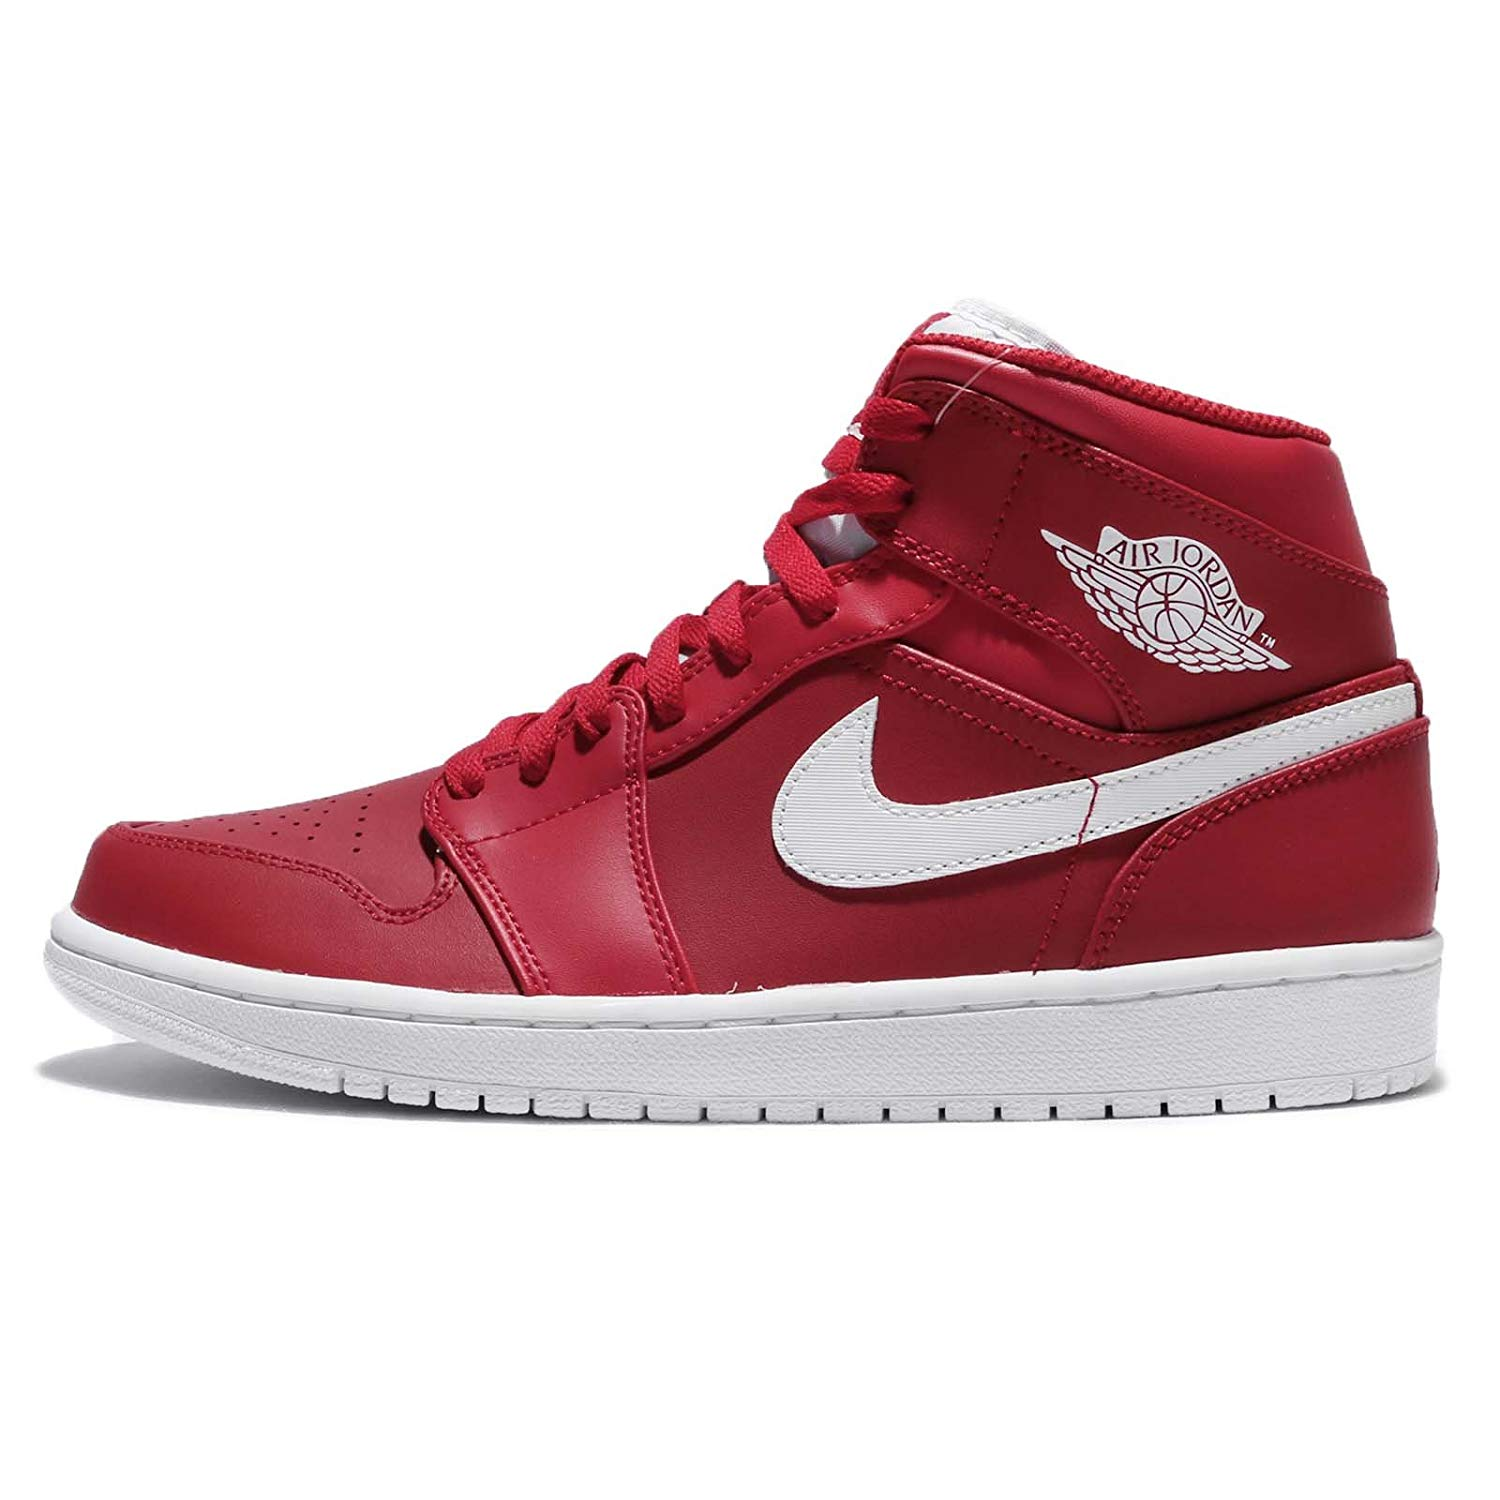 4120f16a27df Get Quotations · Jordan Nike Men s Air 1 Mid Basketball Shoe